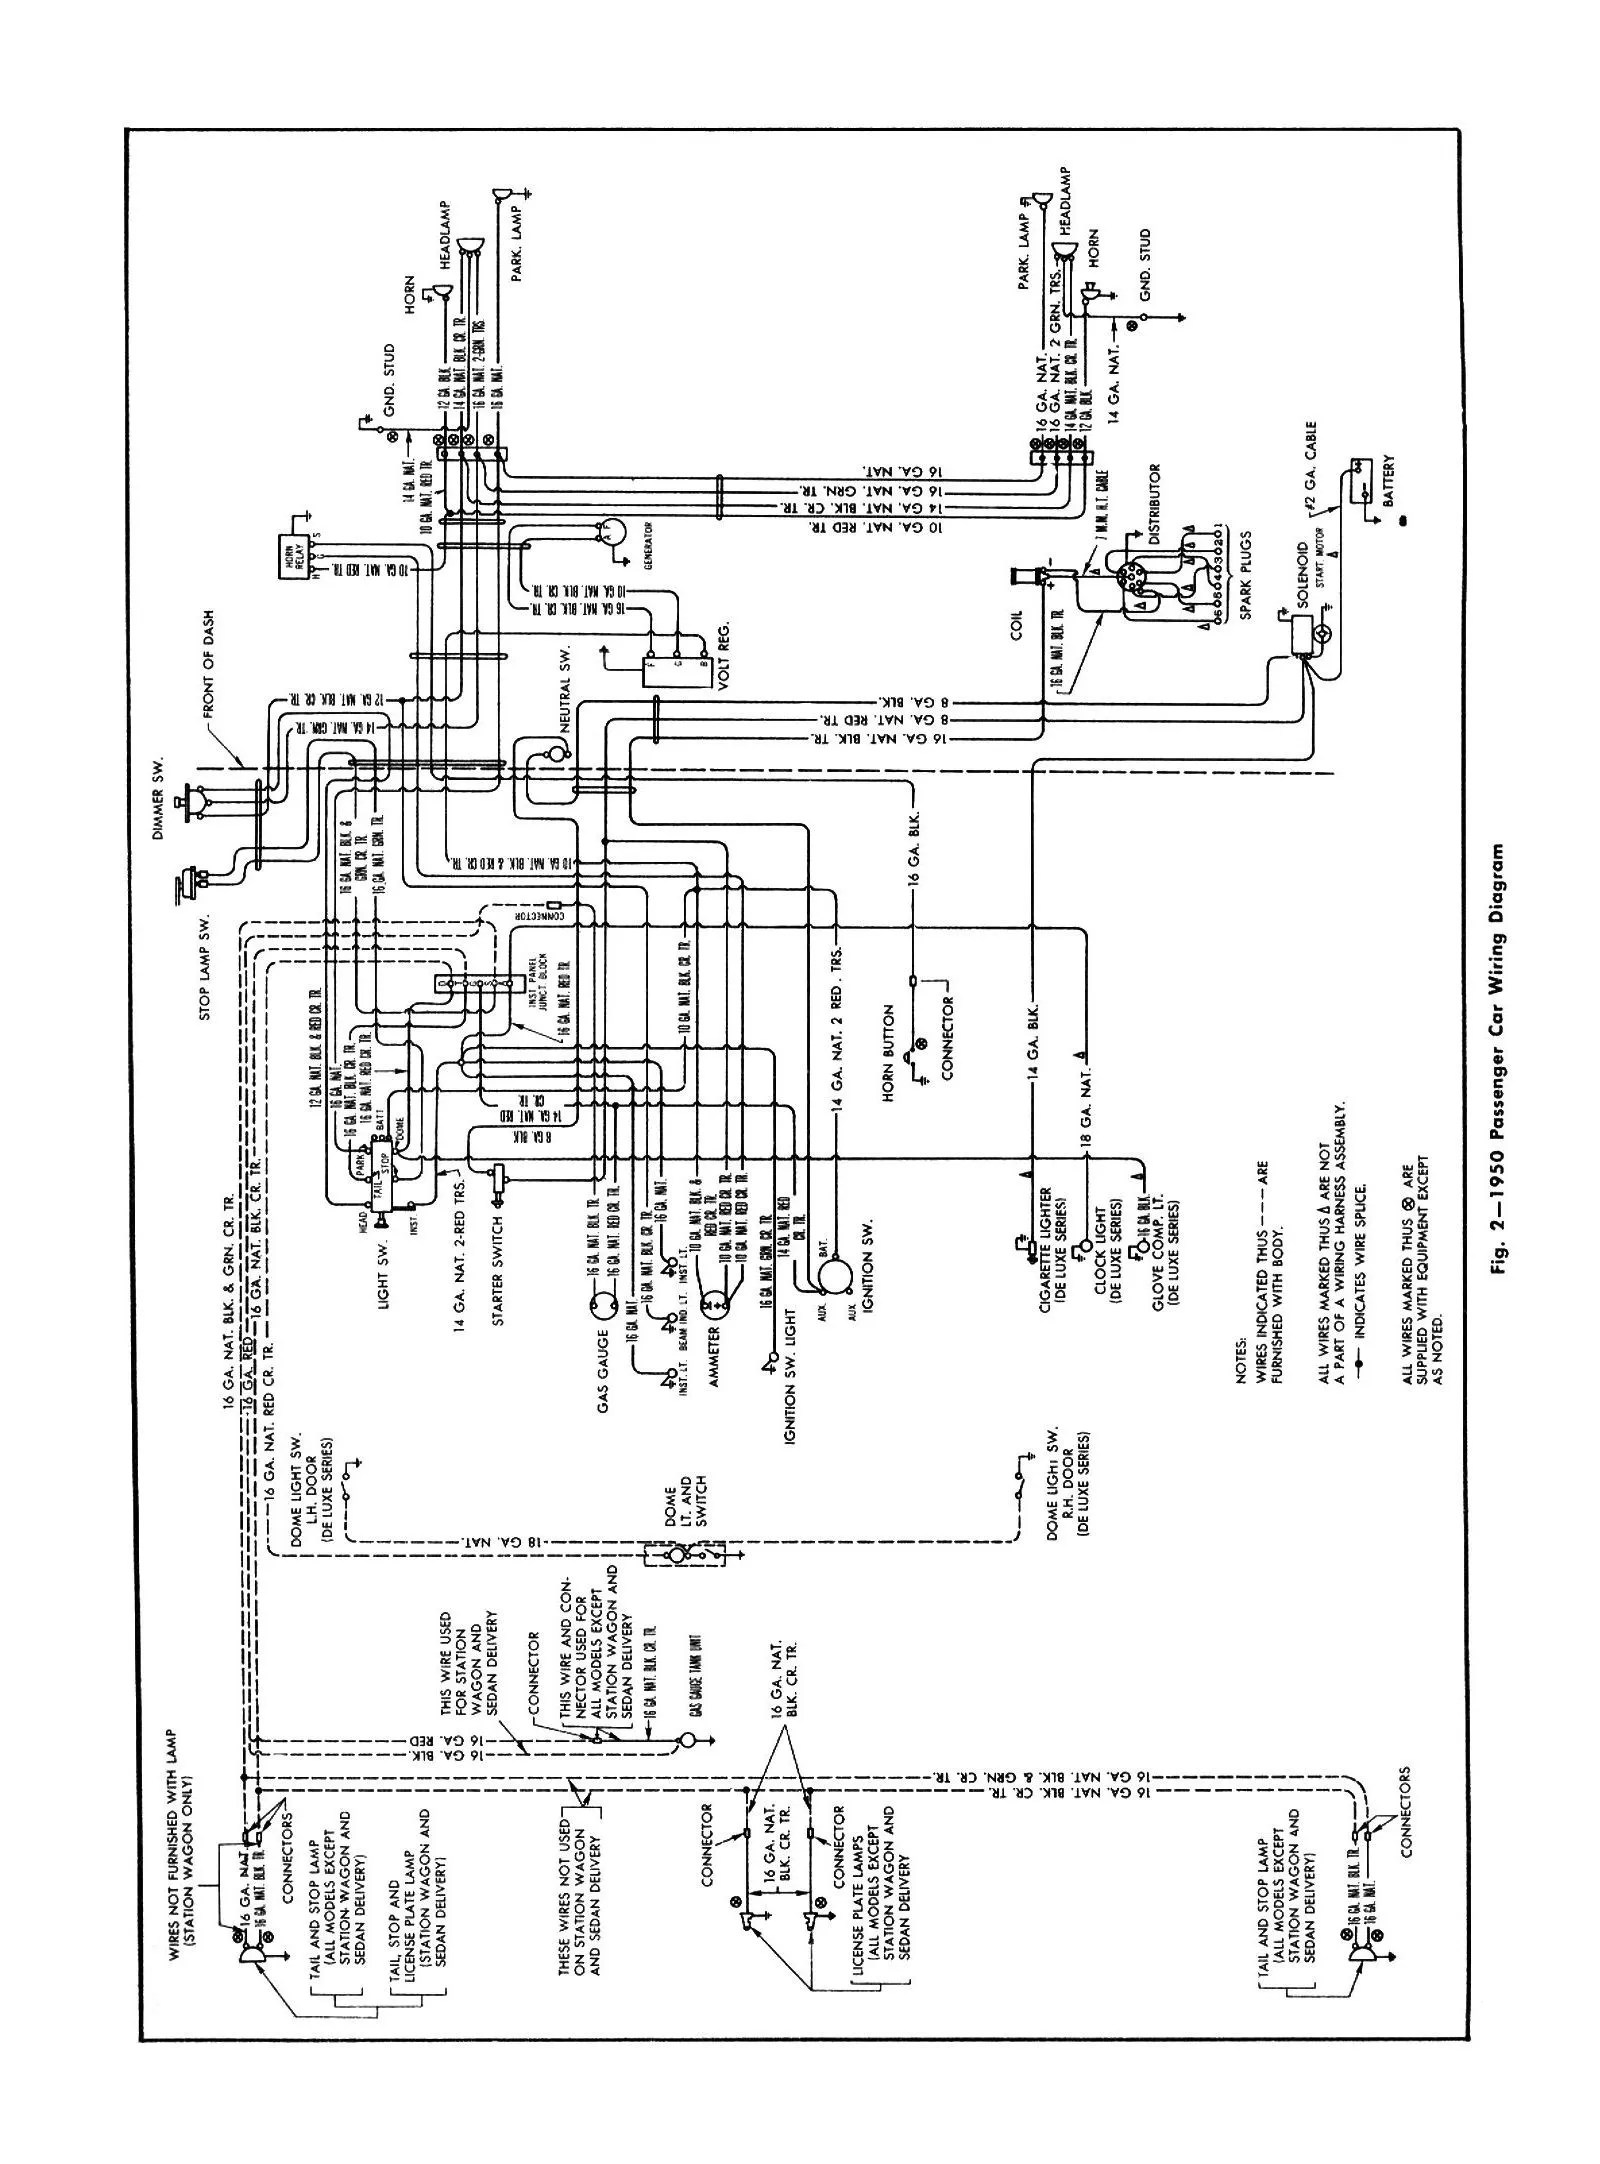 hight resolution of 1952 chevy truck wiring diagram wiring library 1949 ford wiring diagram 1952 chevy pick up wiring diagram